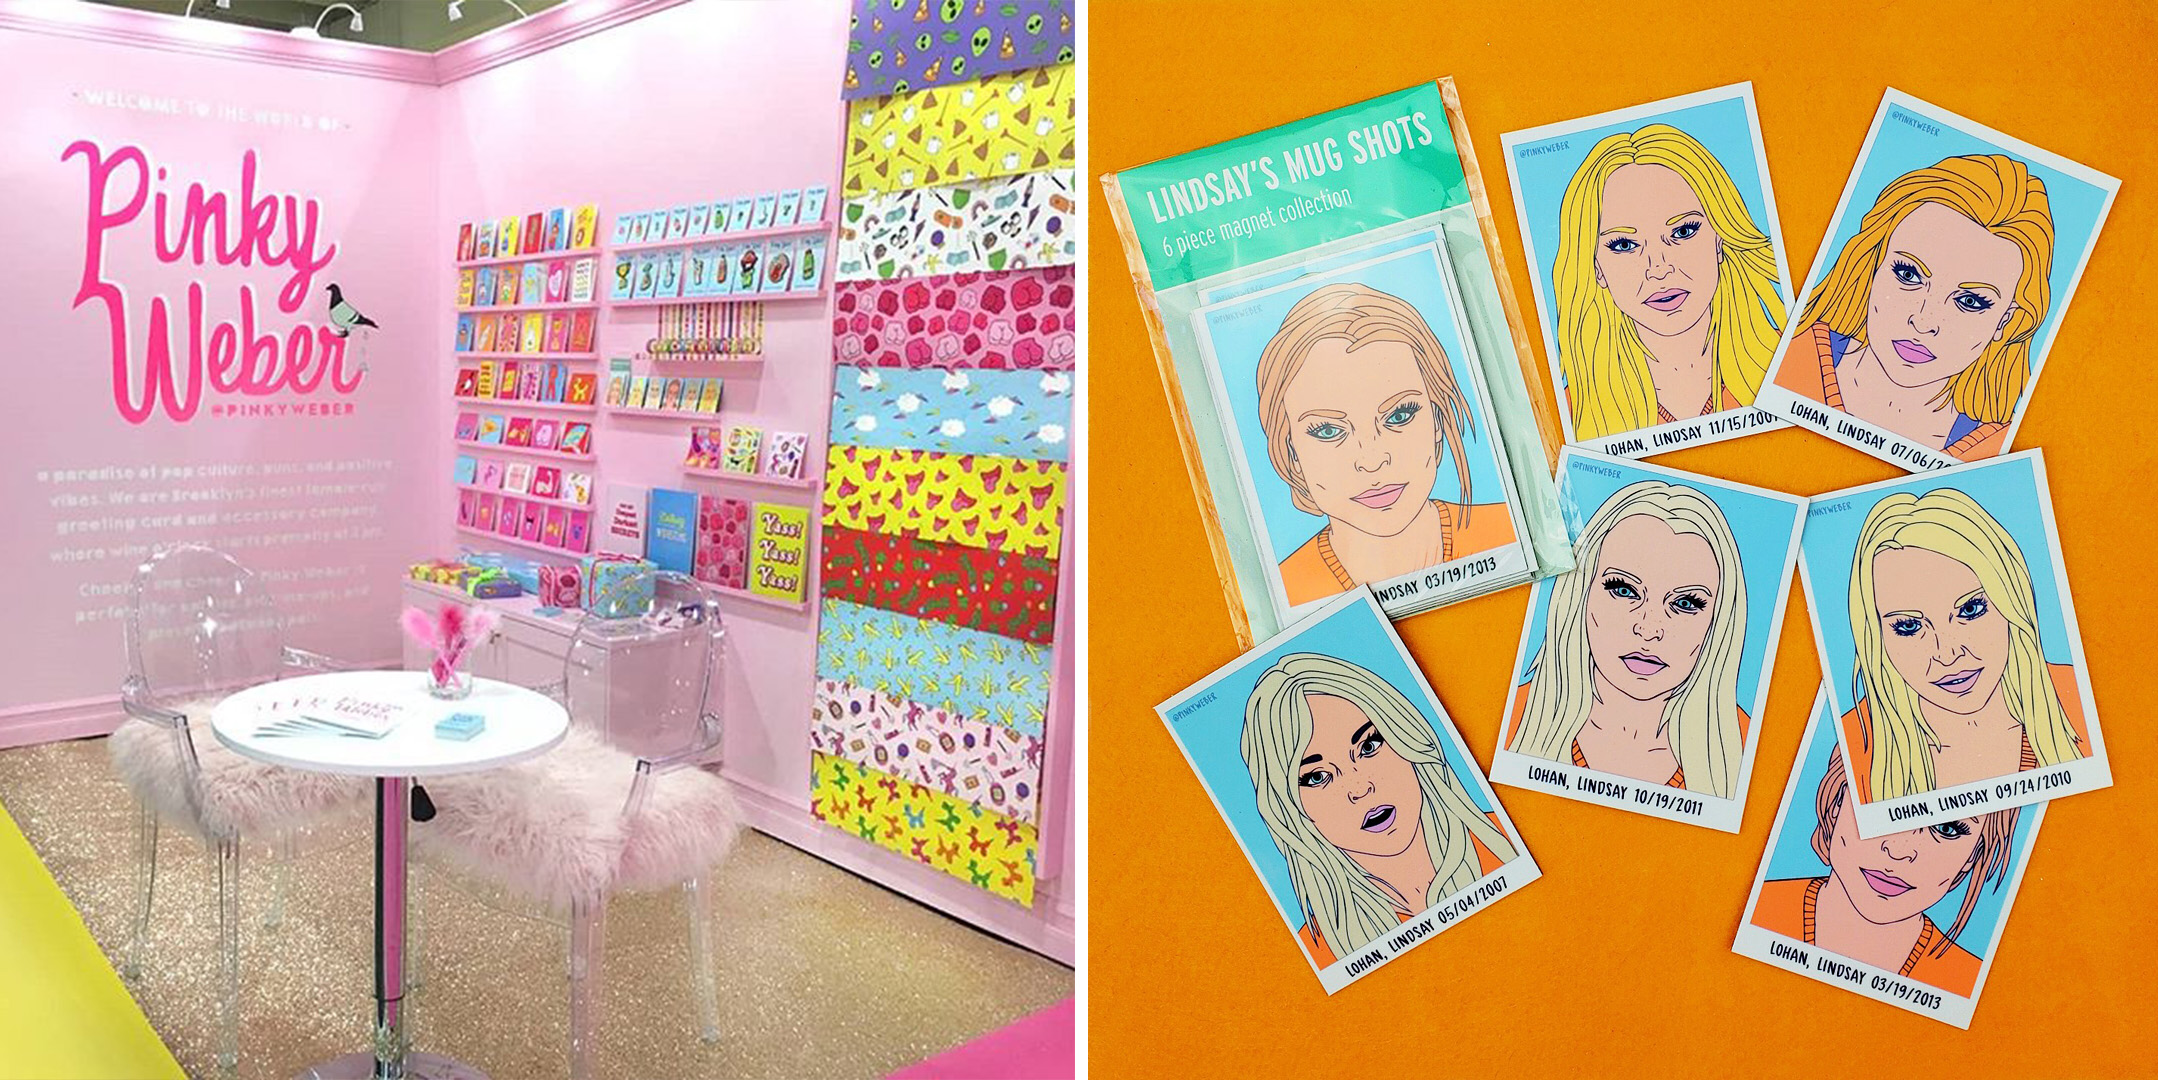 My absolute favorite booth had to be  Pinky Weber (these images are from their instagram @pinkyweber).They have such a unique signature look, and who can resist a magnet pack of Lindsay Lohan mugshots?! Plus that glittery flooring was to. die.